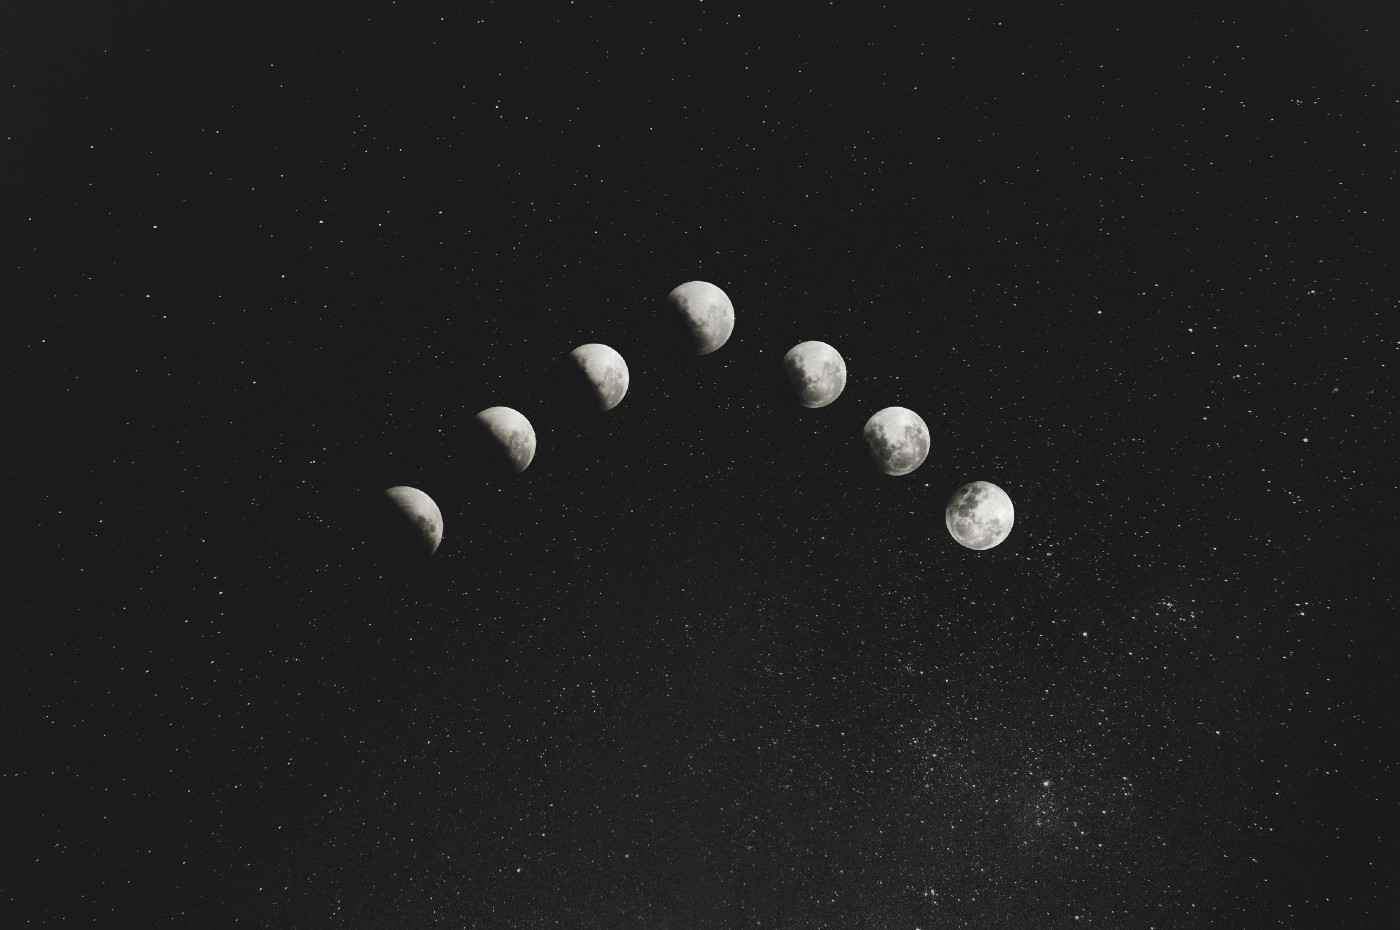 Moons in a V formation